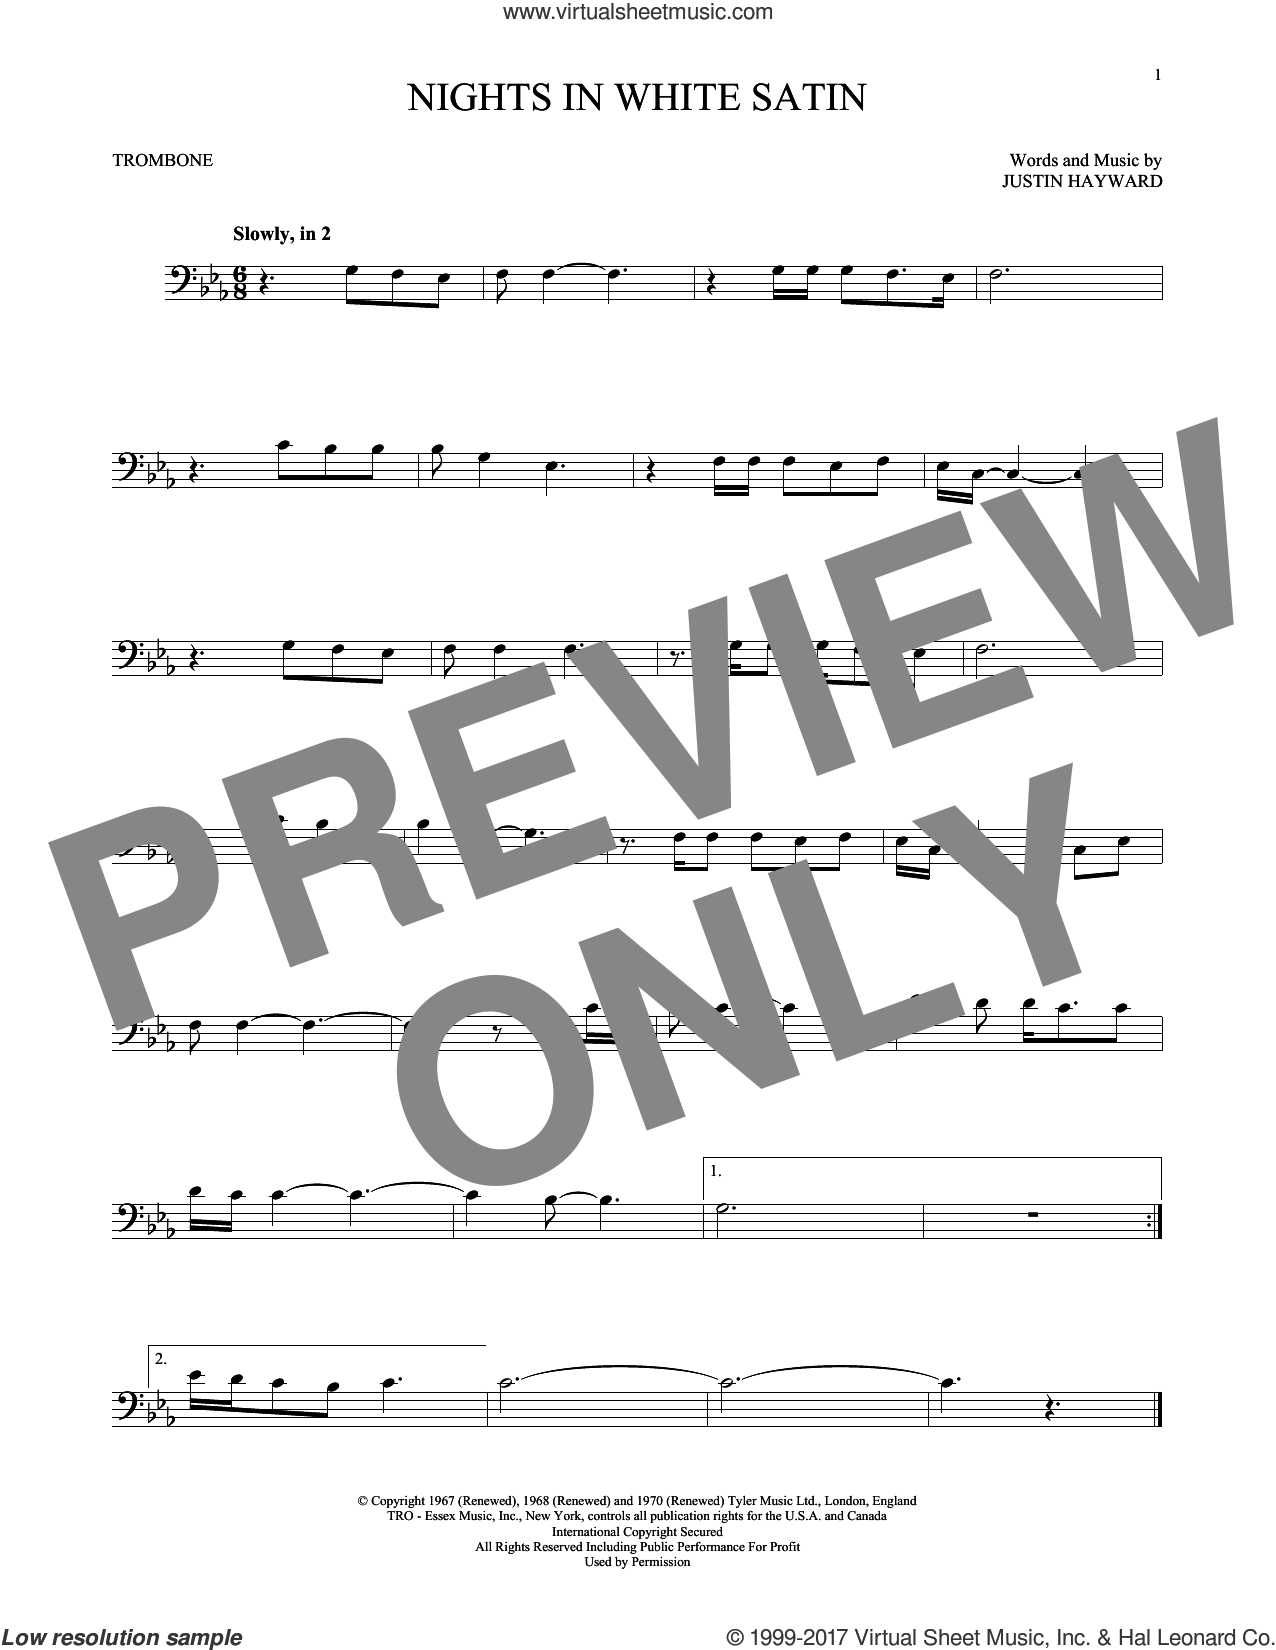 Nights In White Satin sheet music for trombone solo by The Moody Blues and Justin Hayward, intermediate skill level